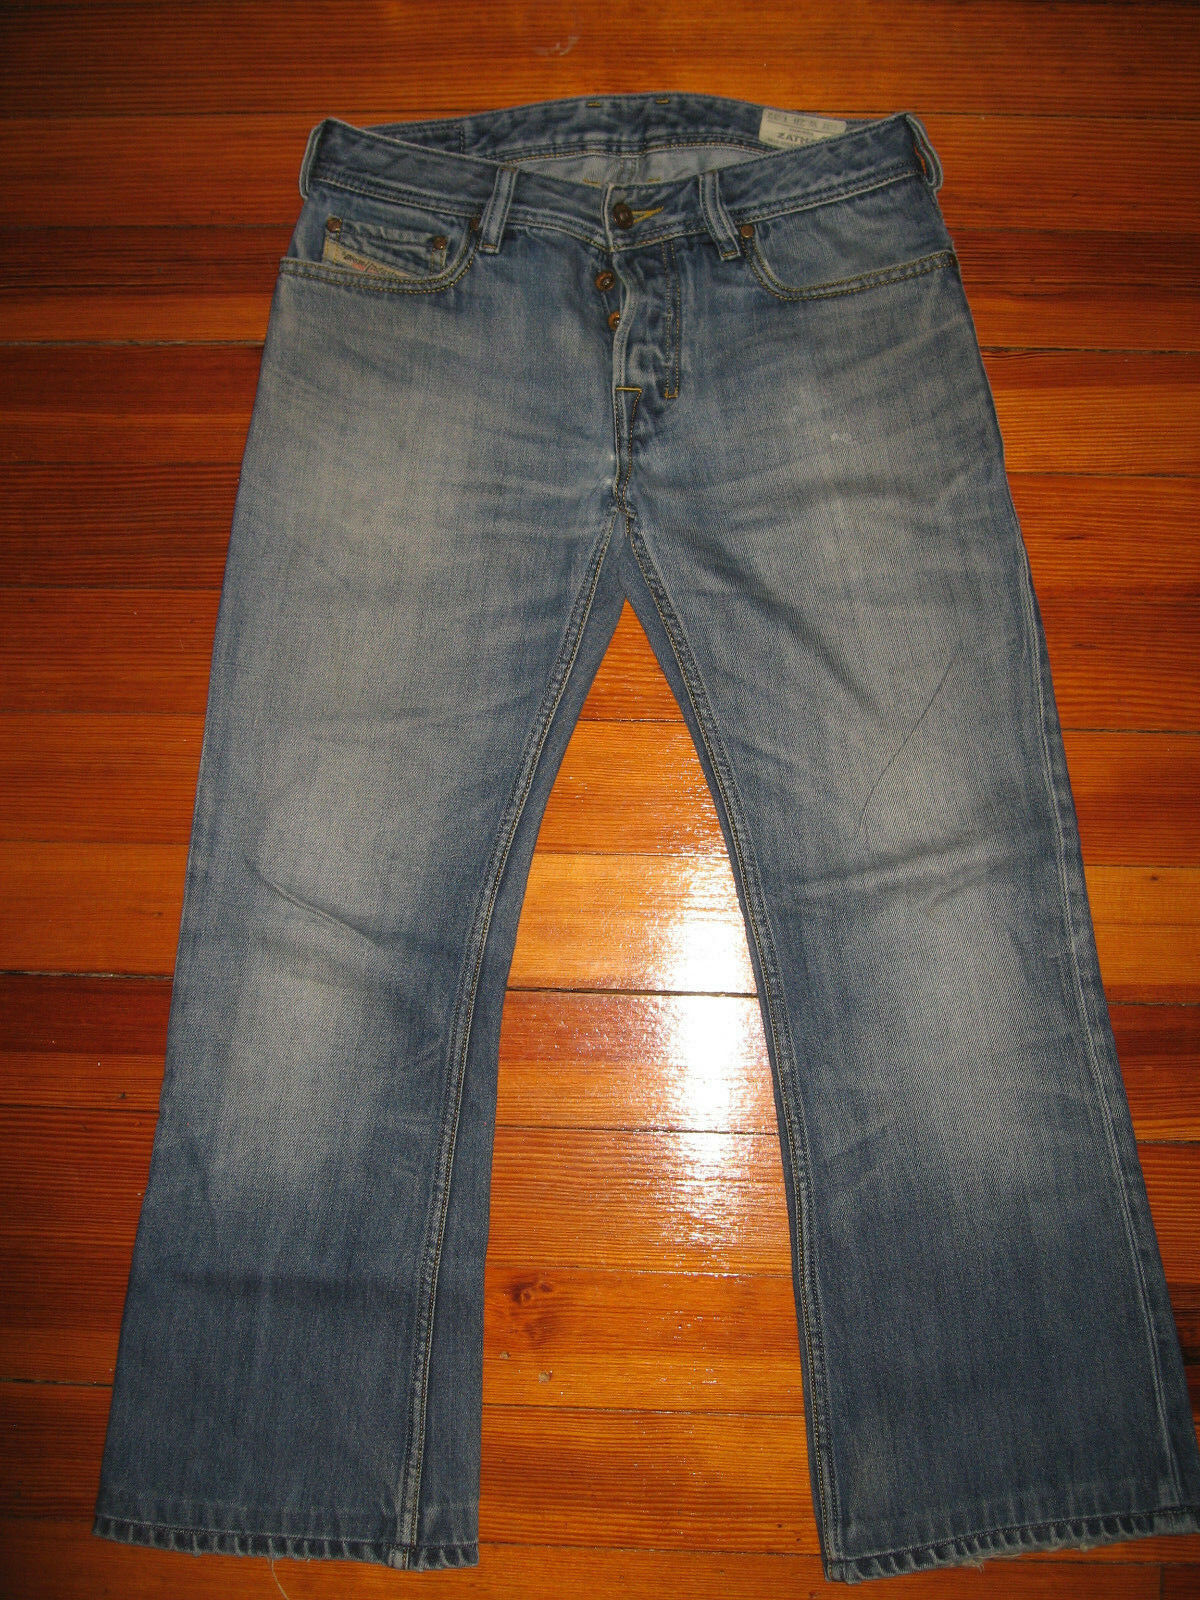 Pre-owned Mens Diesel Zathan bluee Jeans Size 28 x 26.5 Young Adult  Teens